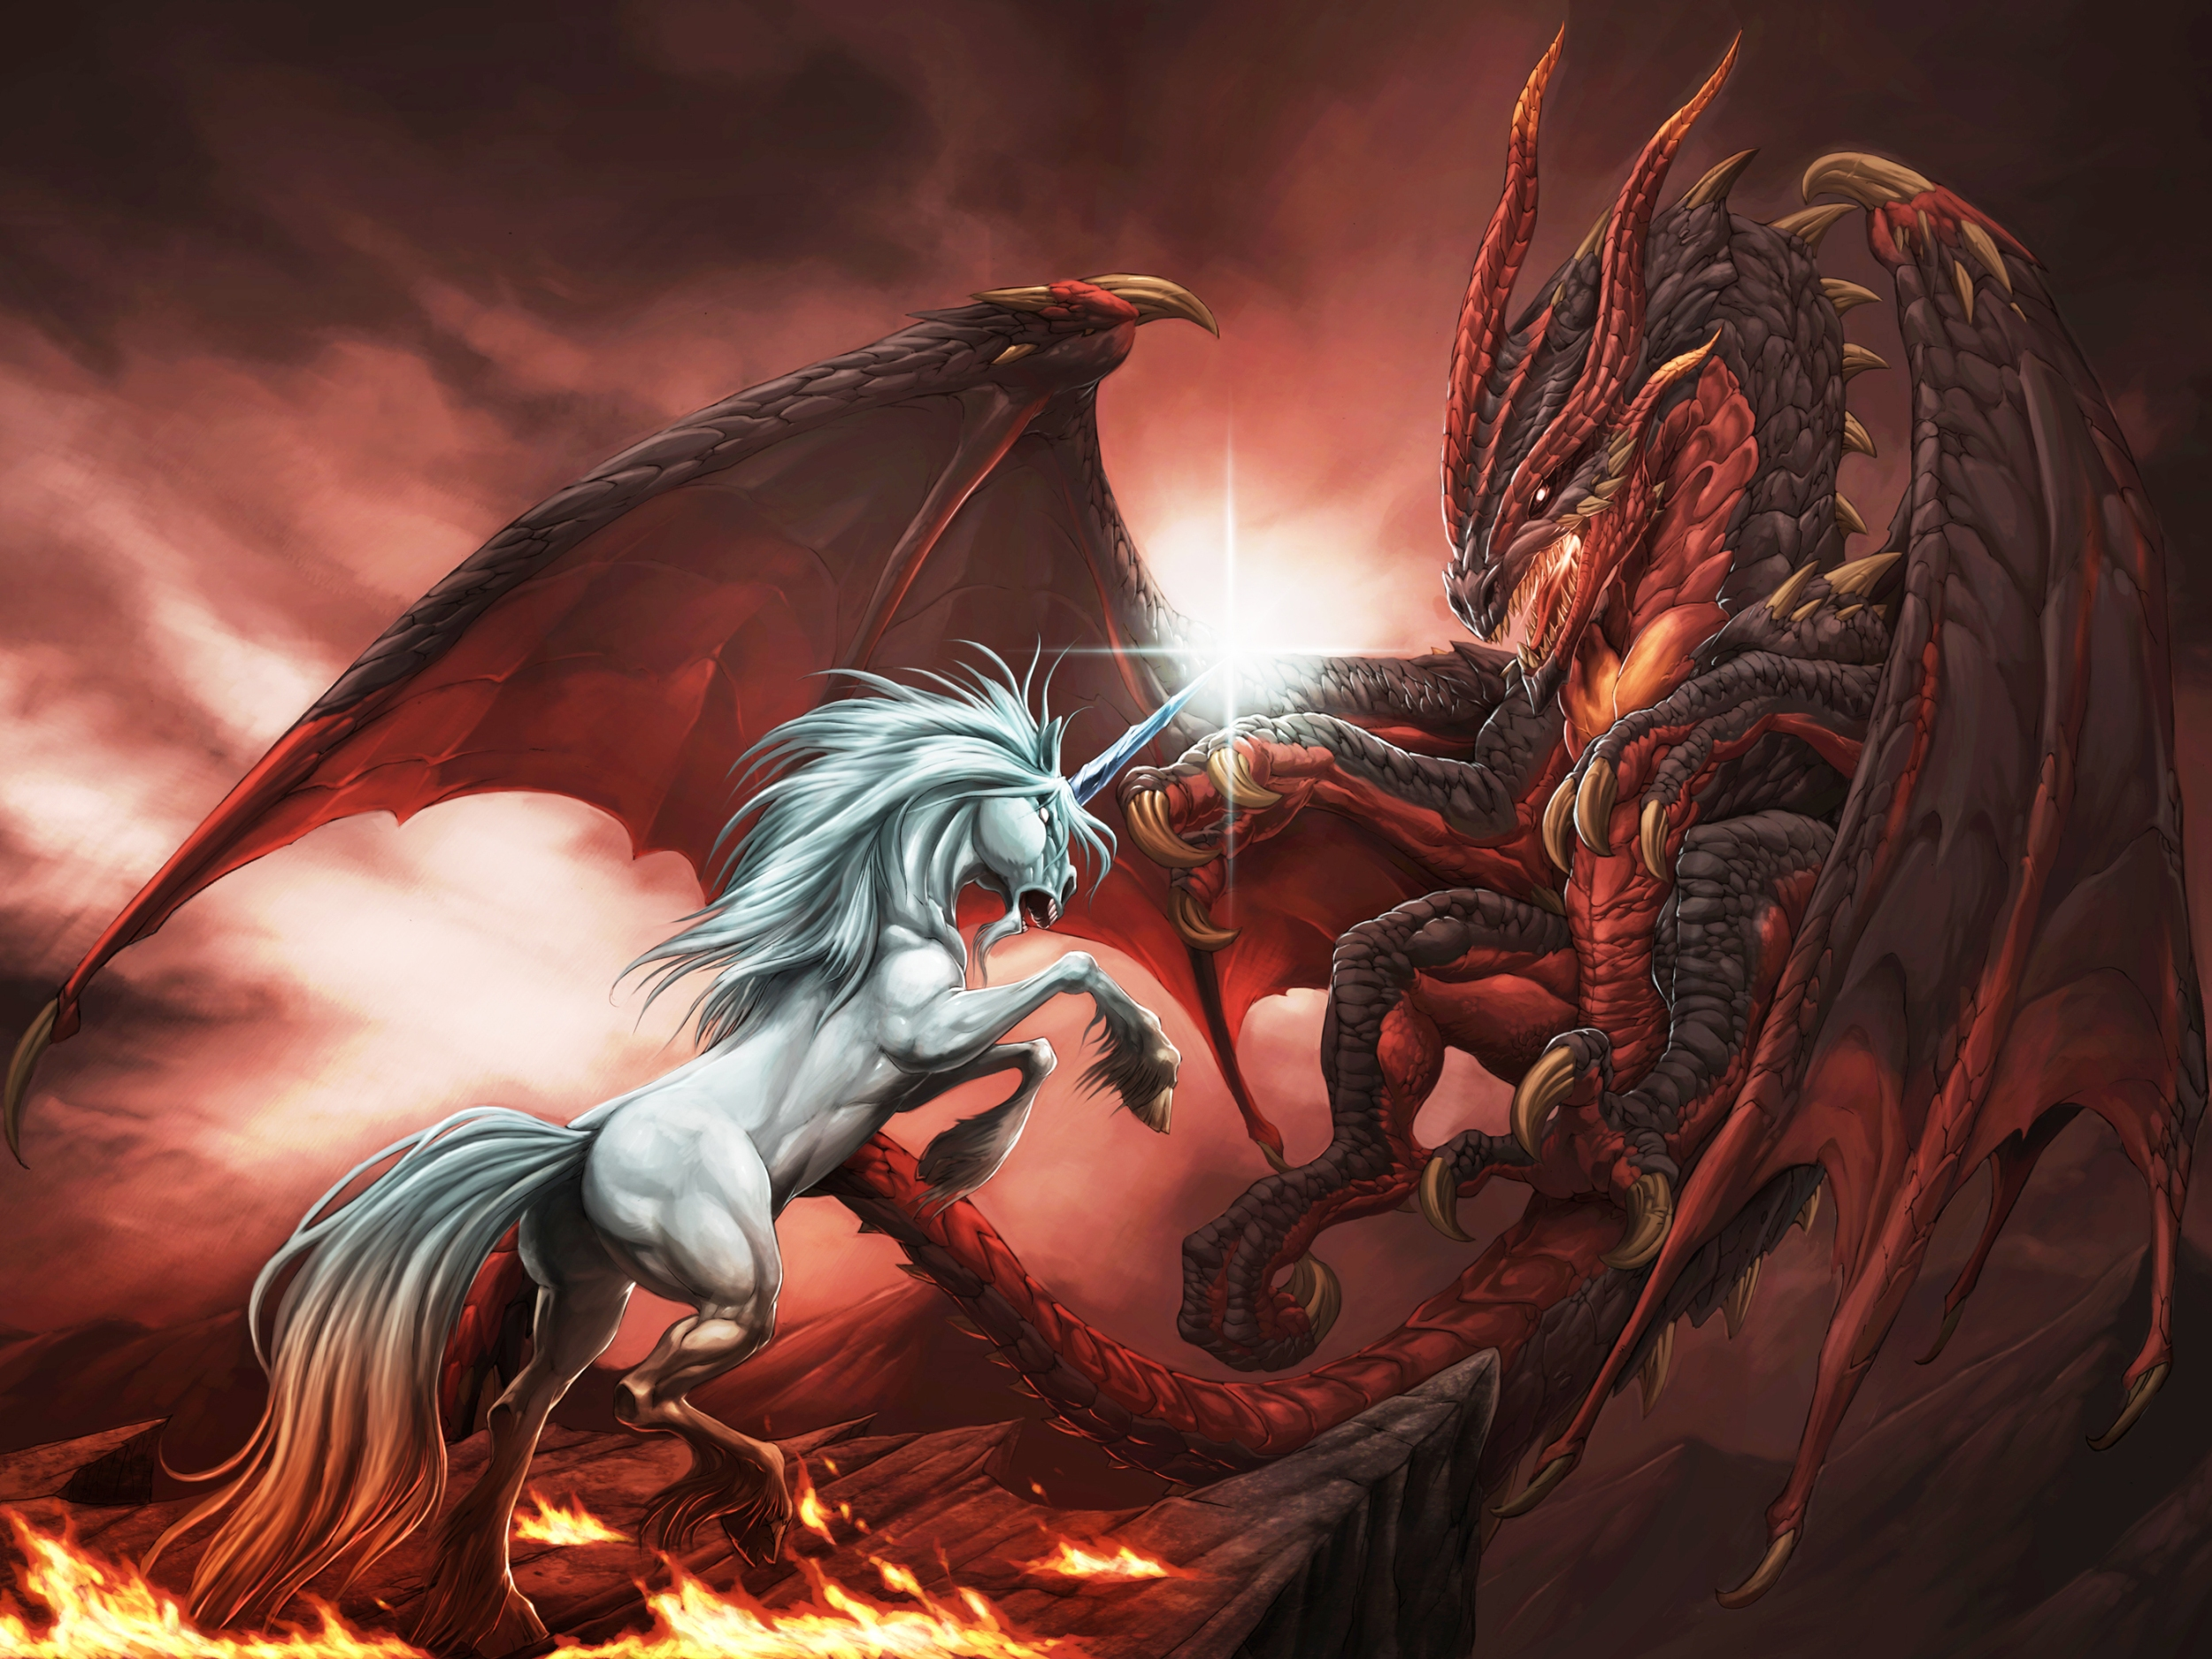 hd wallpaper dragon vs licorne 2500x1875